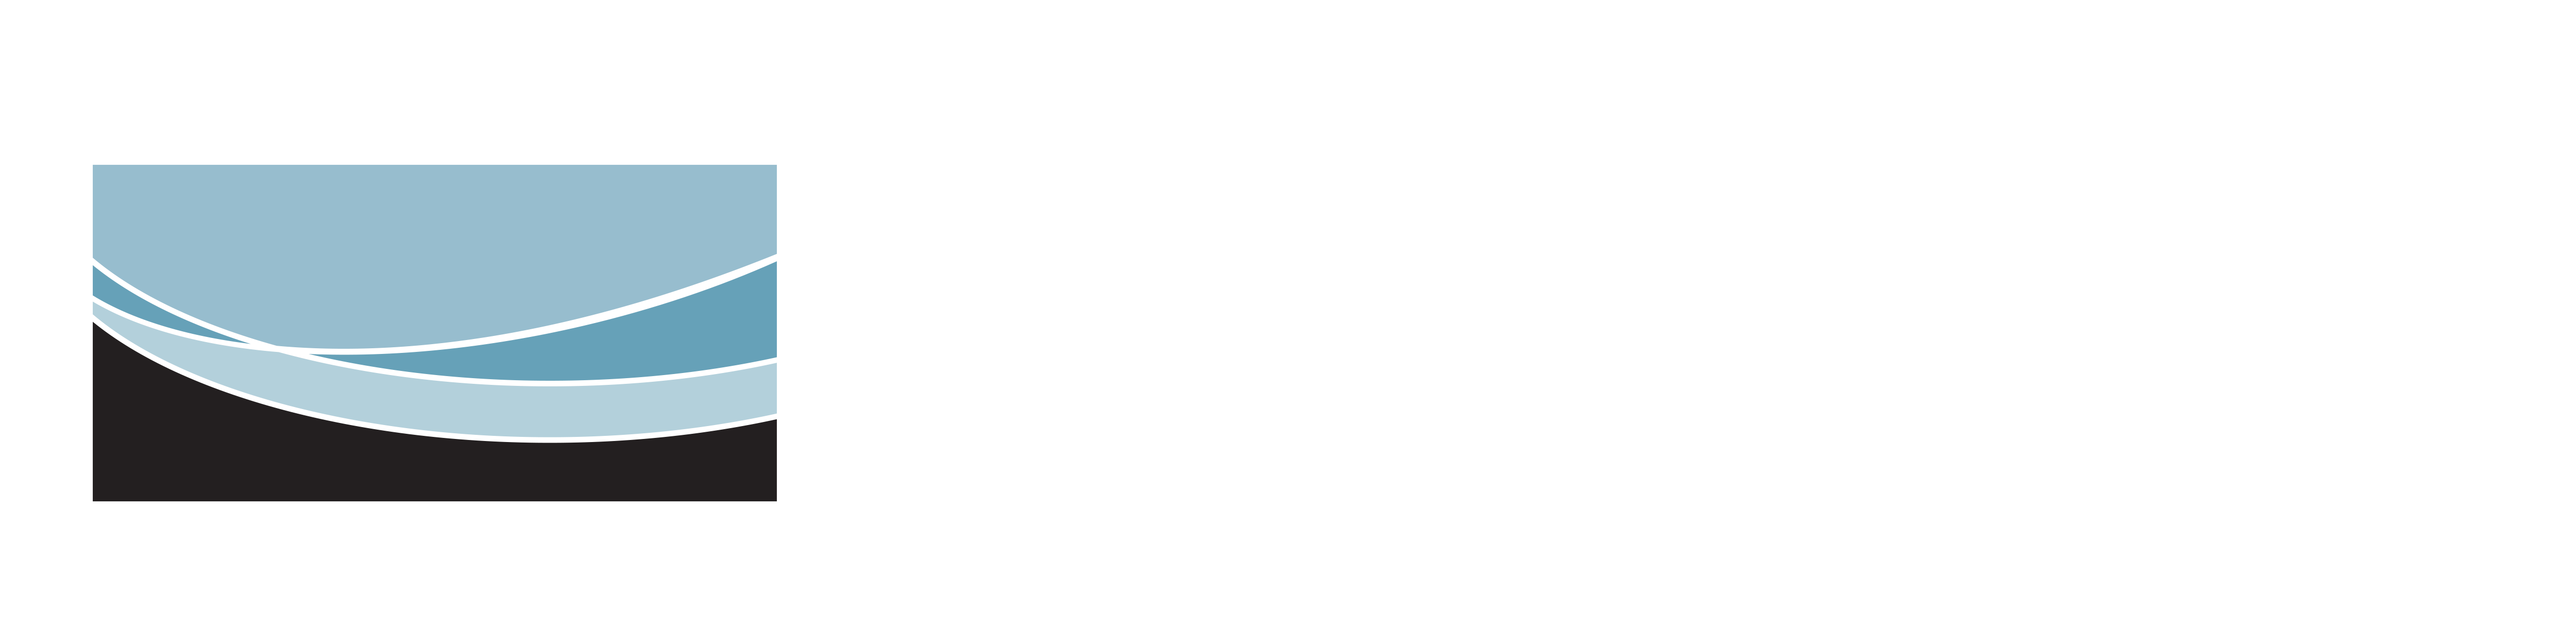 International Lining Technology